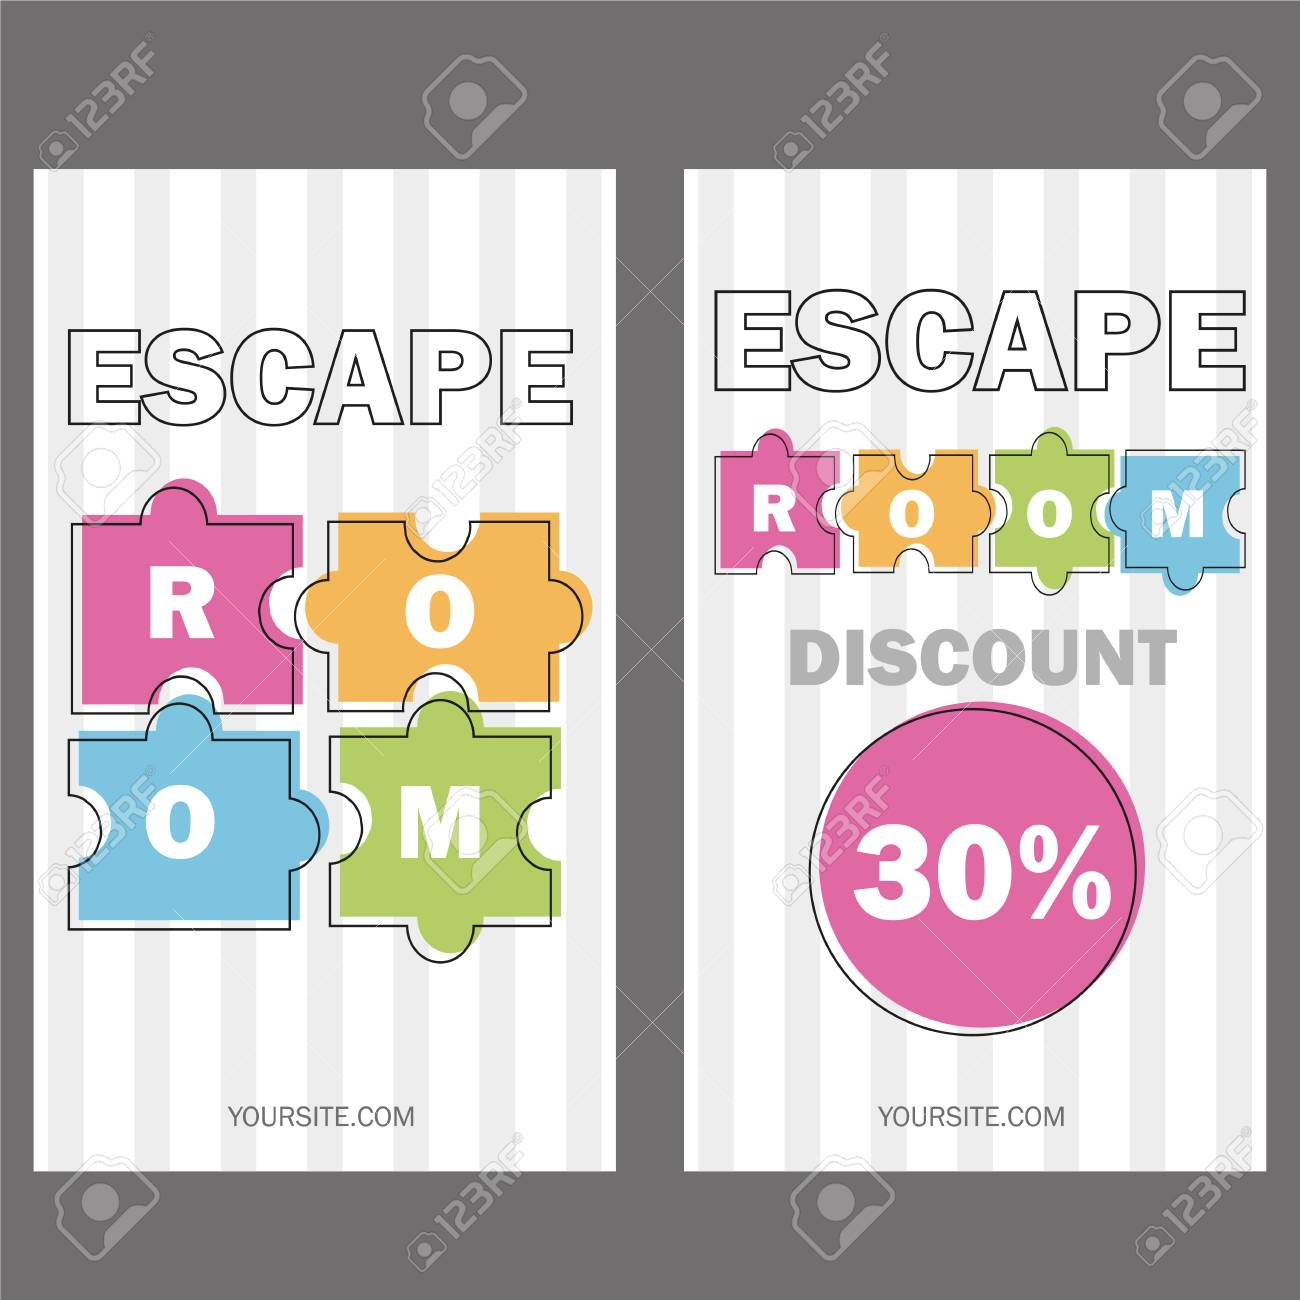 Escape room  Vector illustration poster, banner on white background